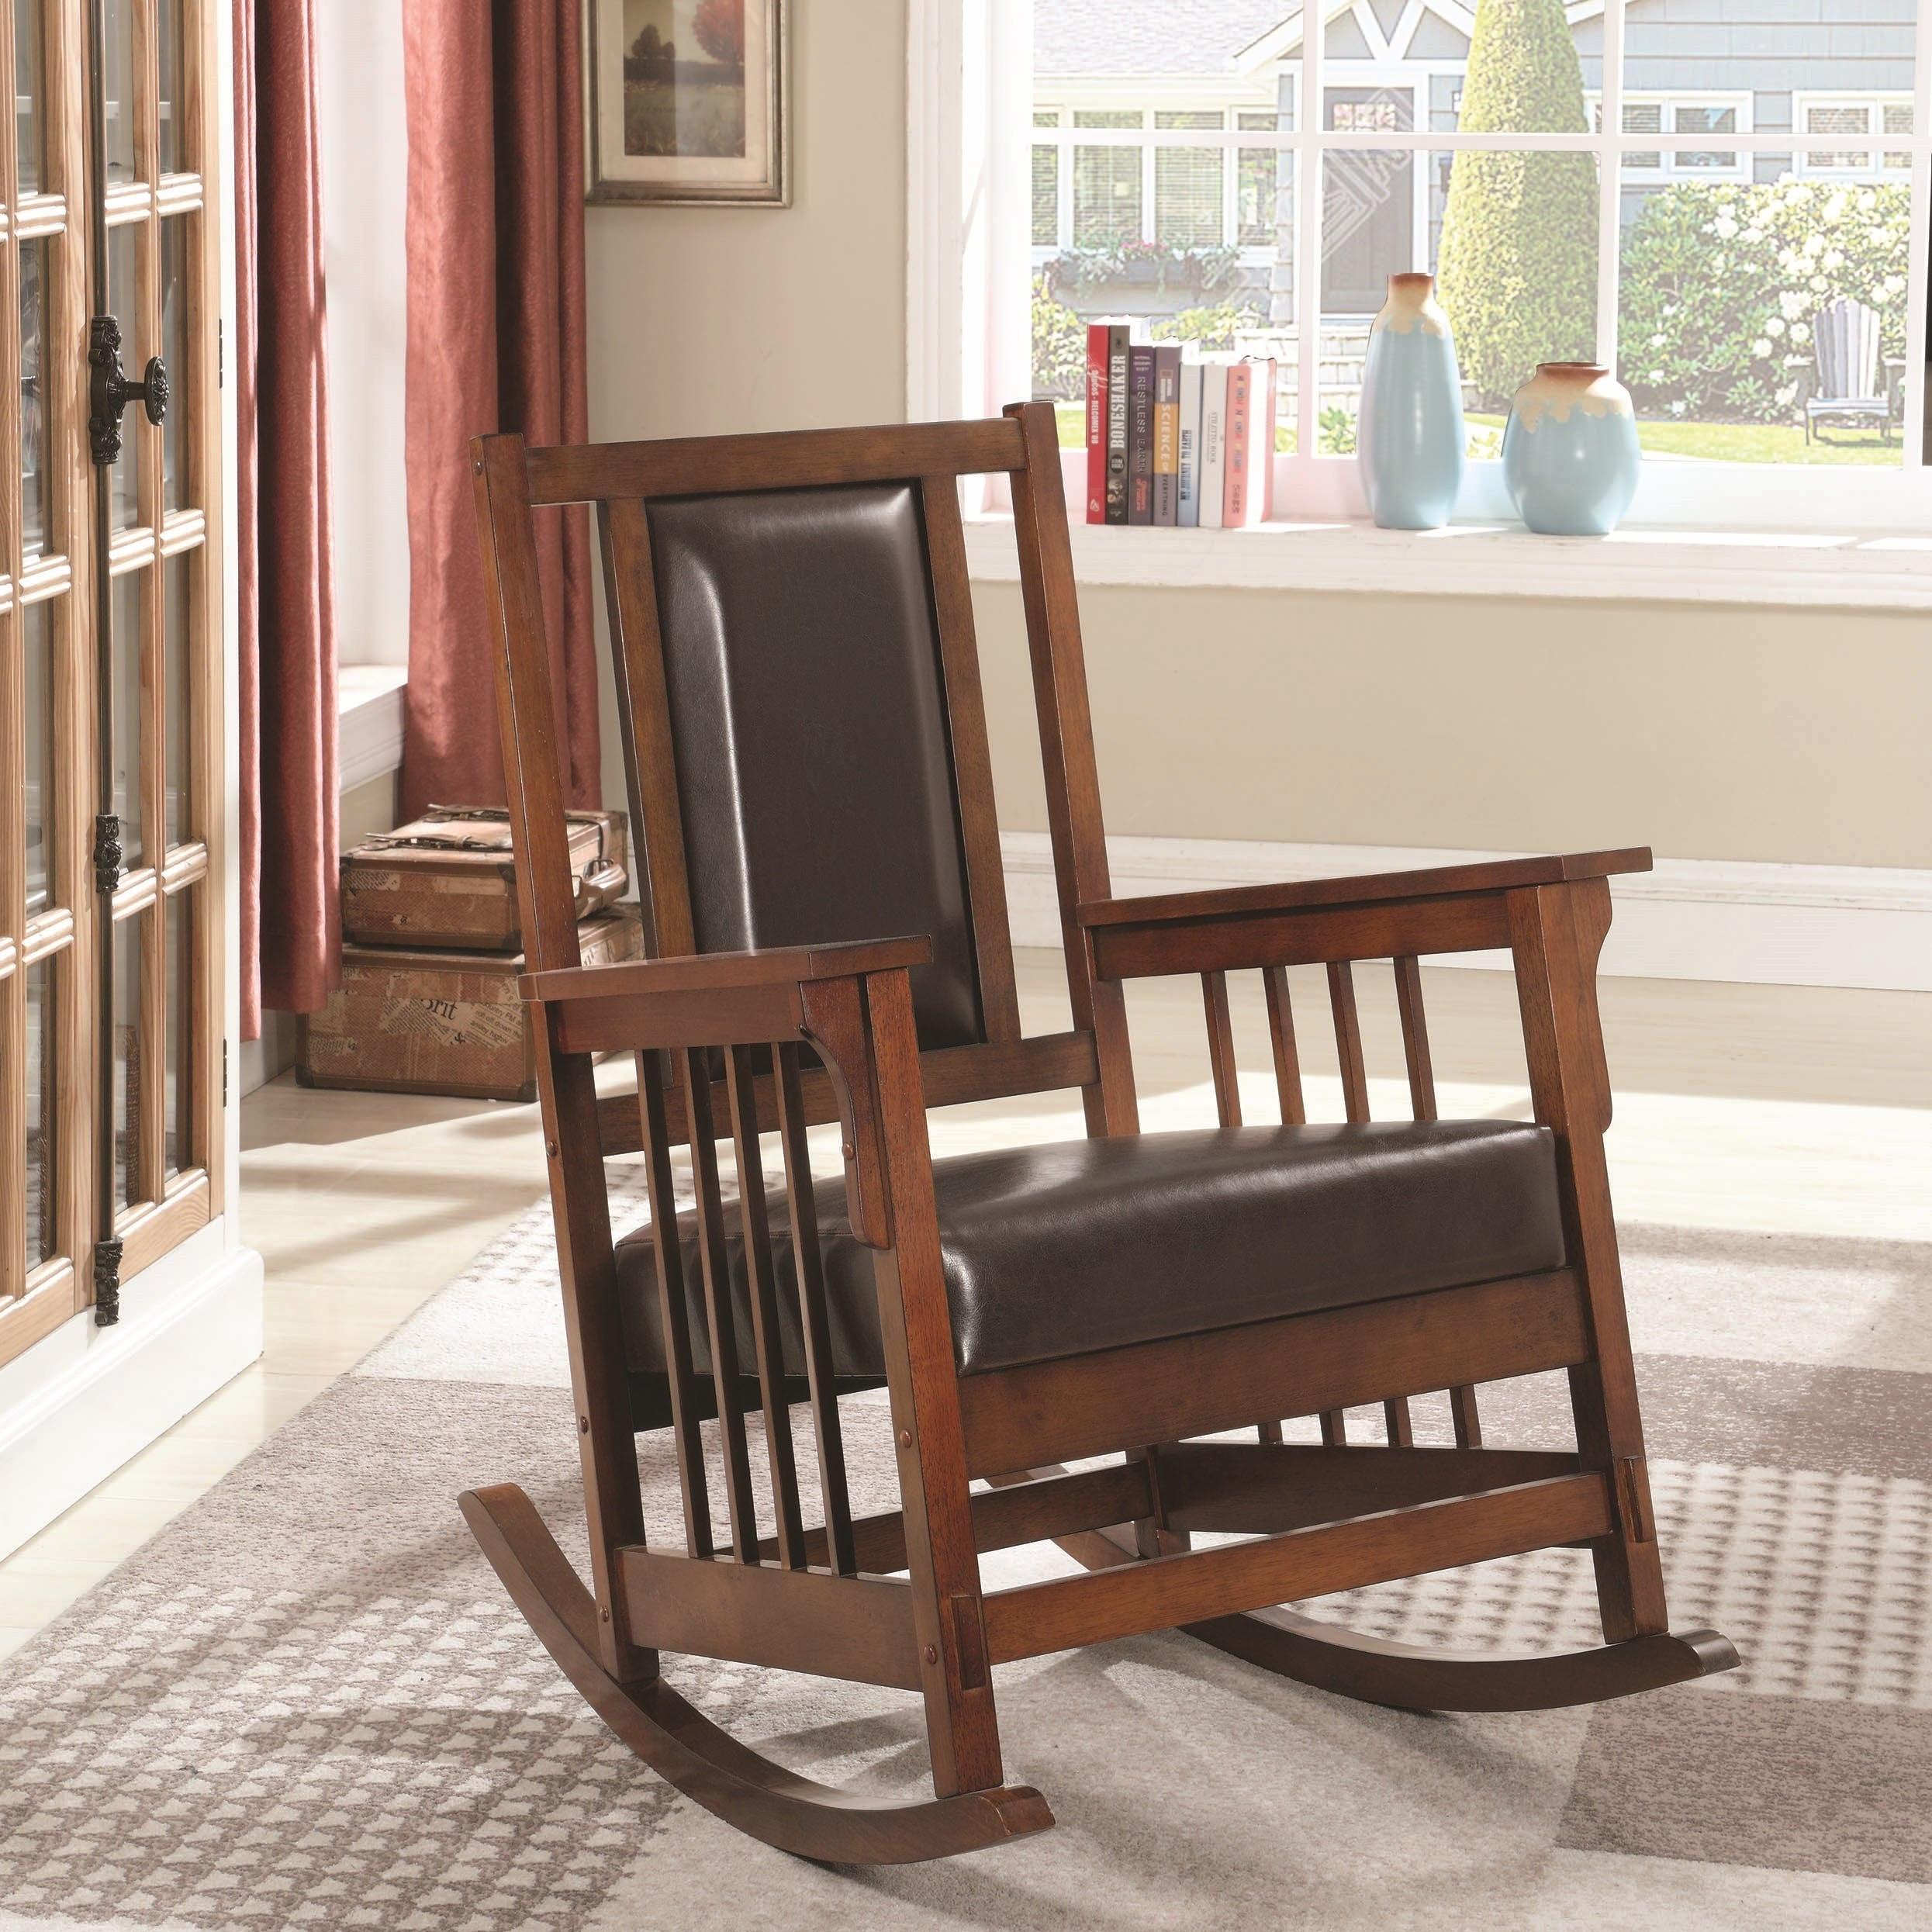 official photos 49ed7 6fda2 Mission Design Wood Rocking Chair with Brown Leather Seat